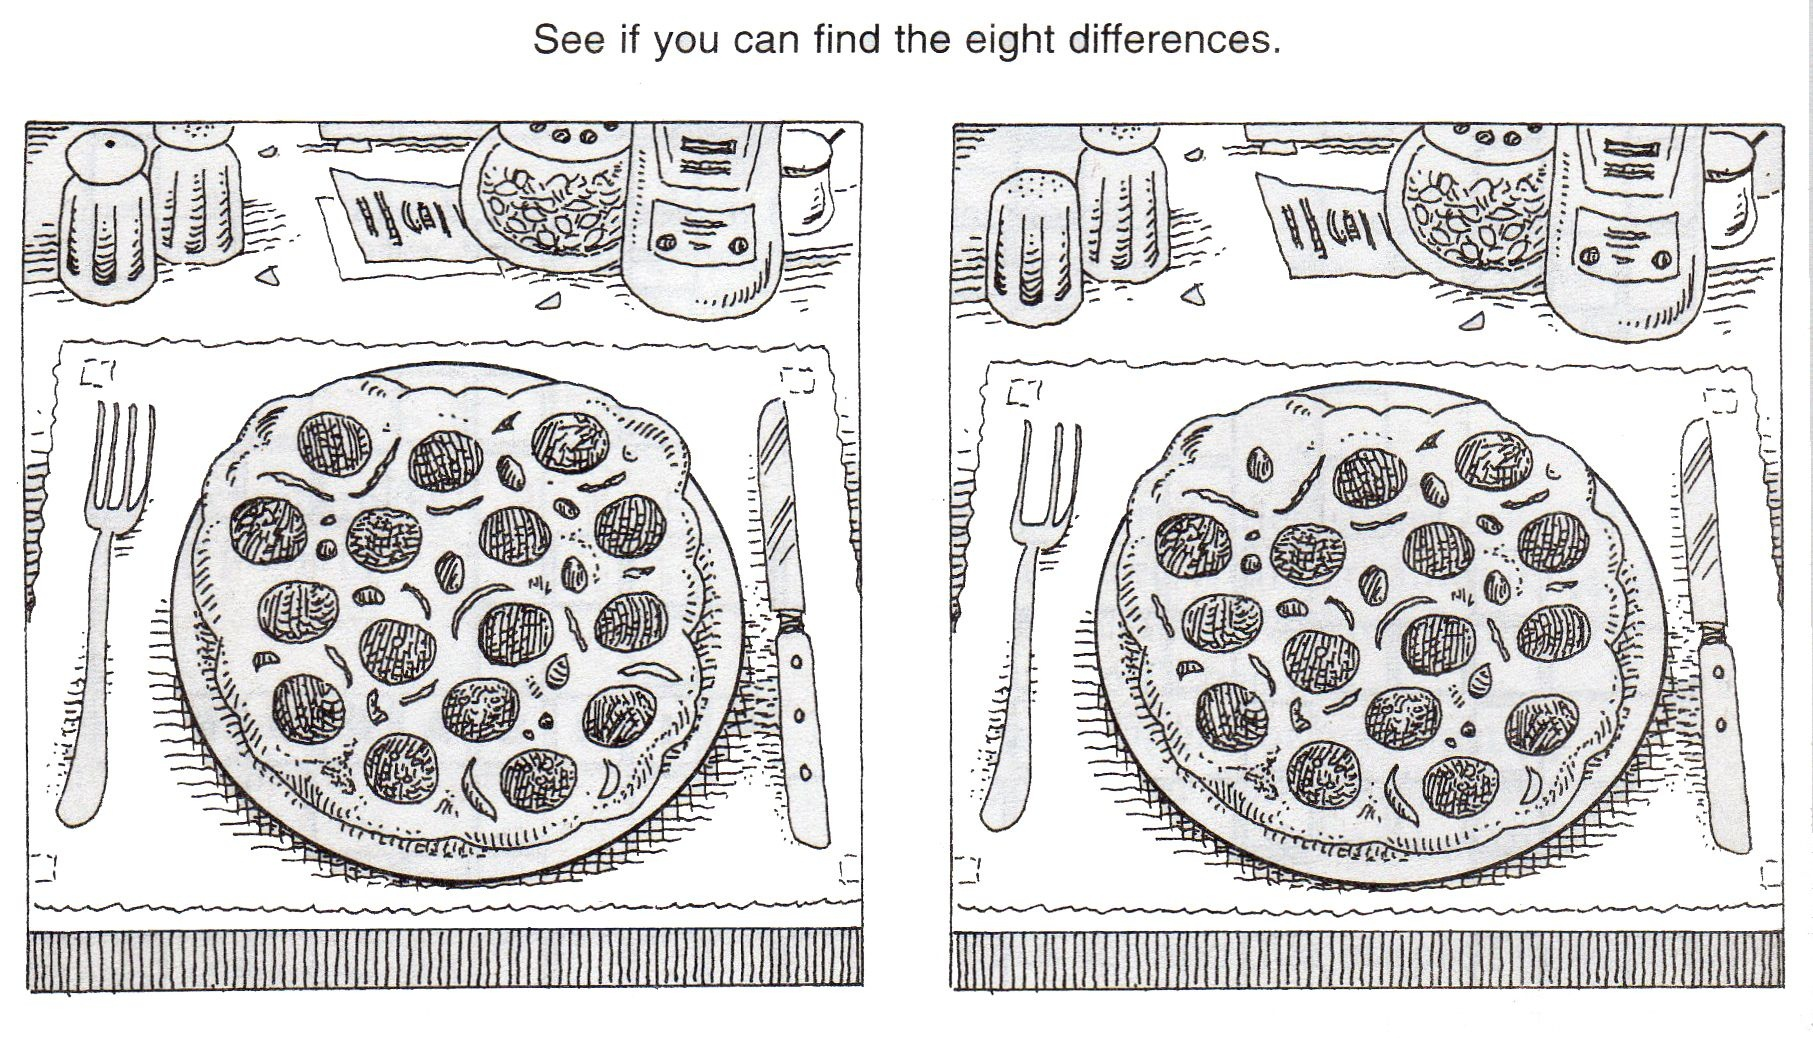 Free+Printable+Spot+The+Difference+Puzzles | Hg | Spot The - Free Printable Spot The Difference Worksheets